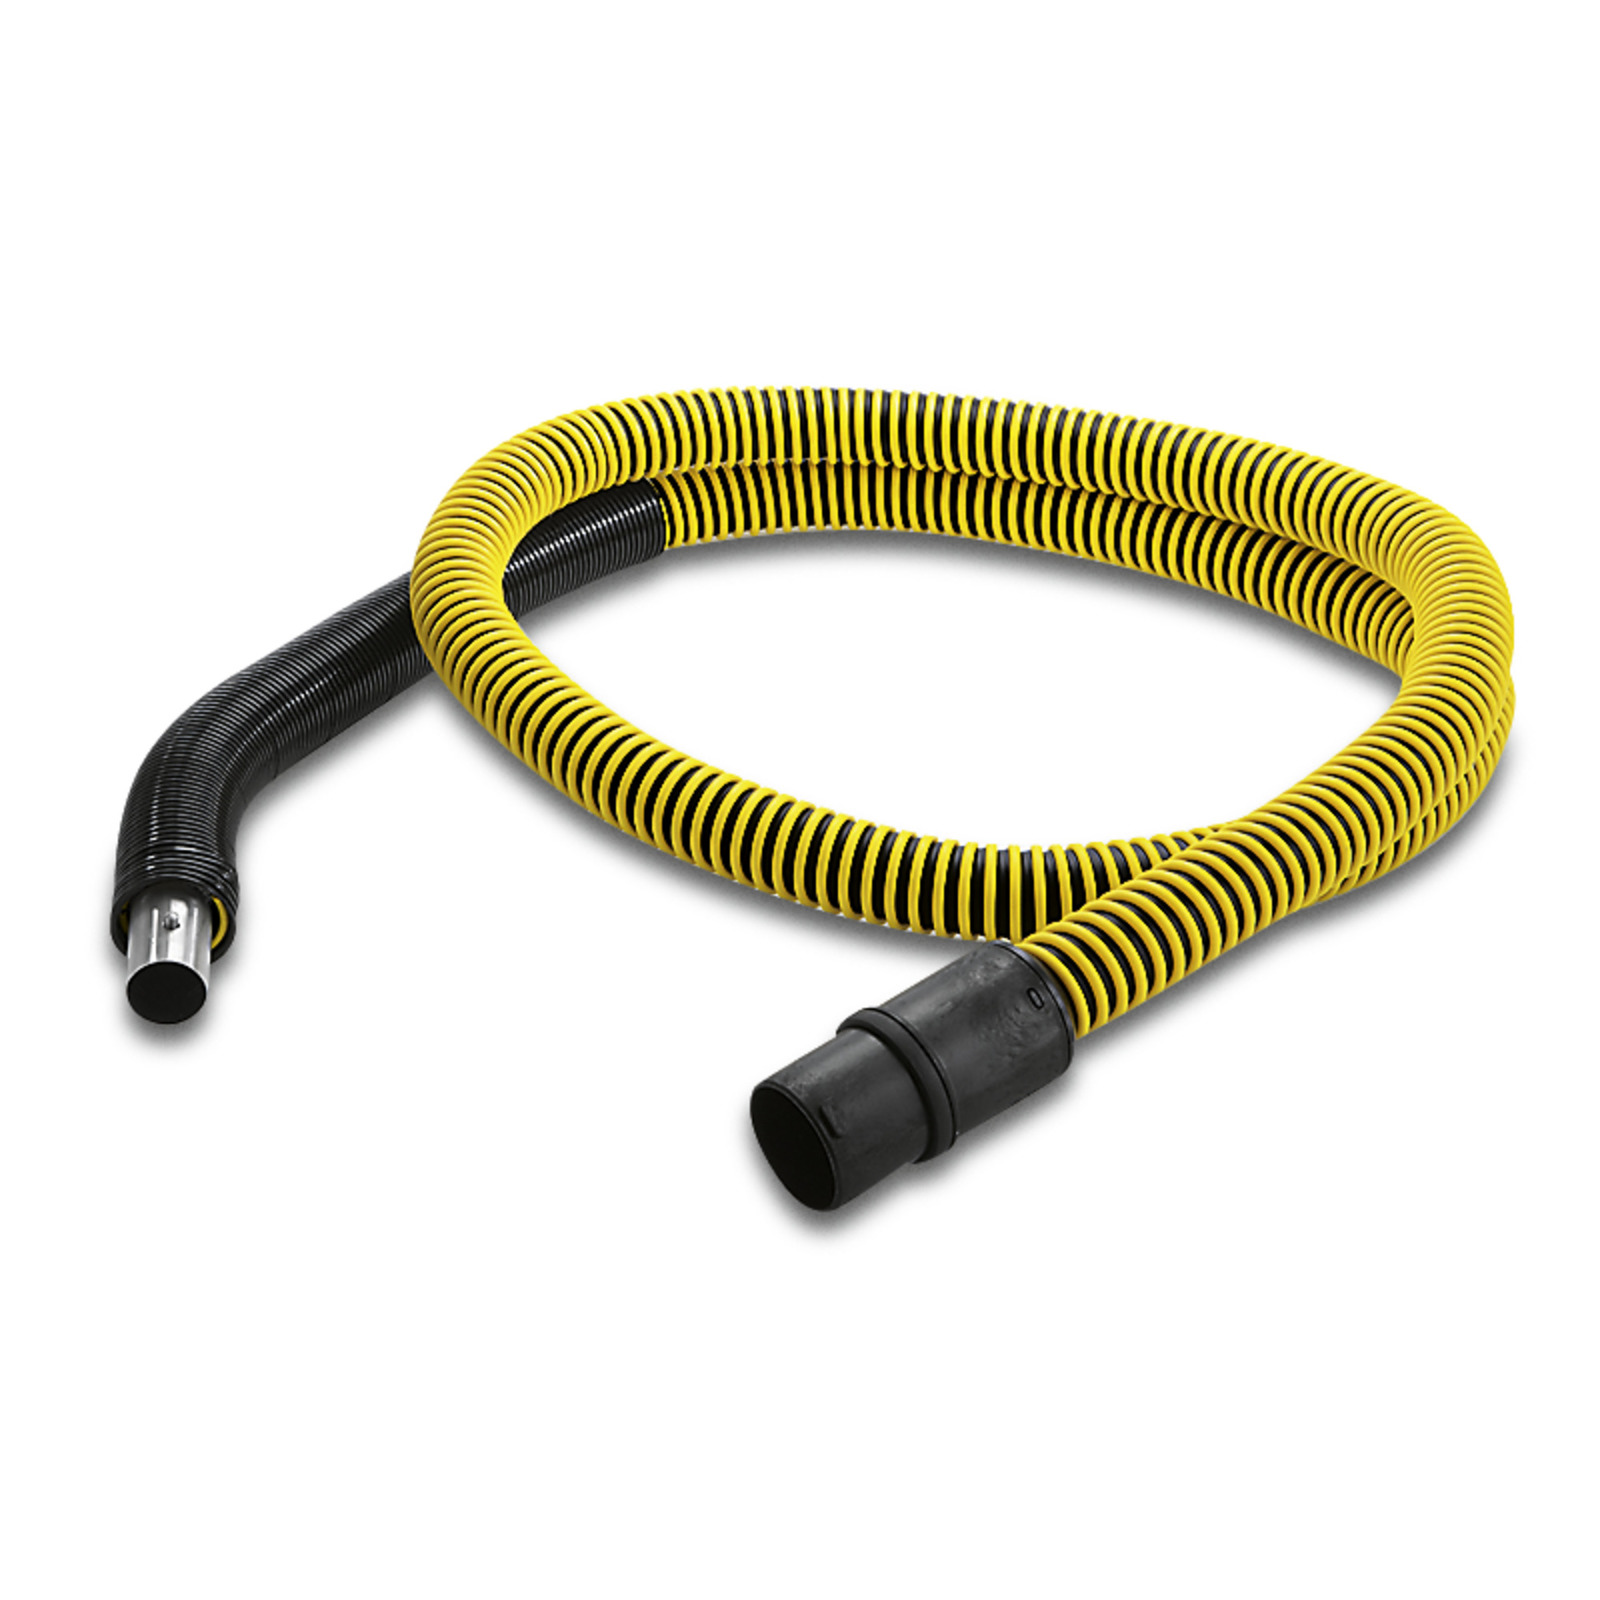 Heat Resistant Hose >> Special Suction Hose Id 35 Heat Resistant